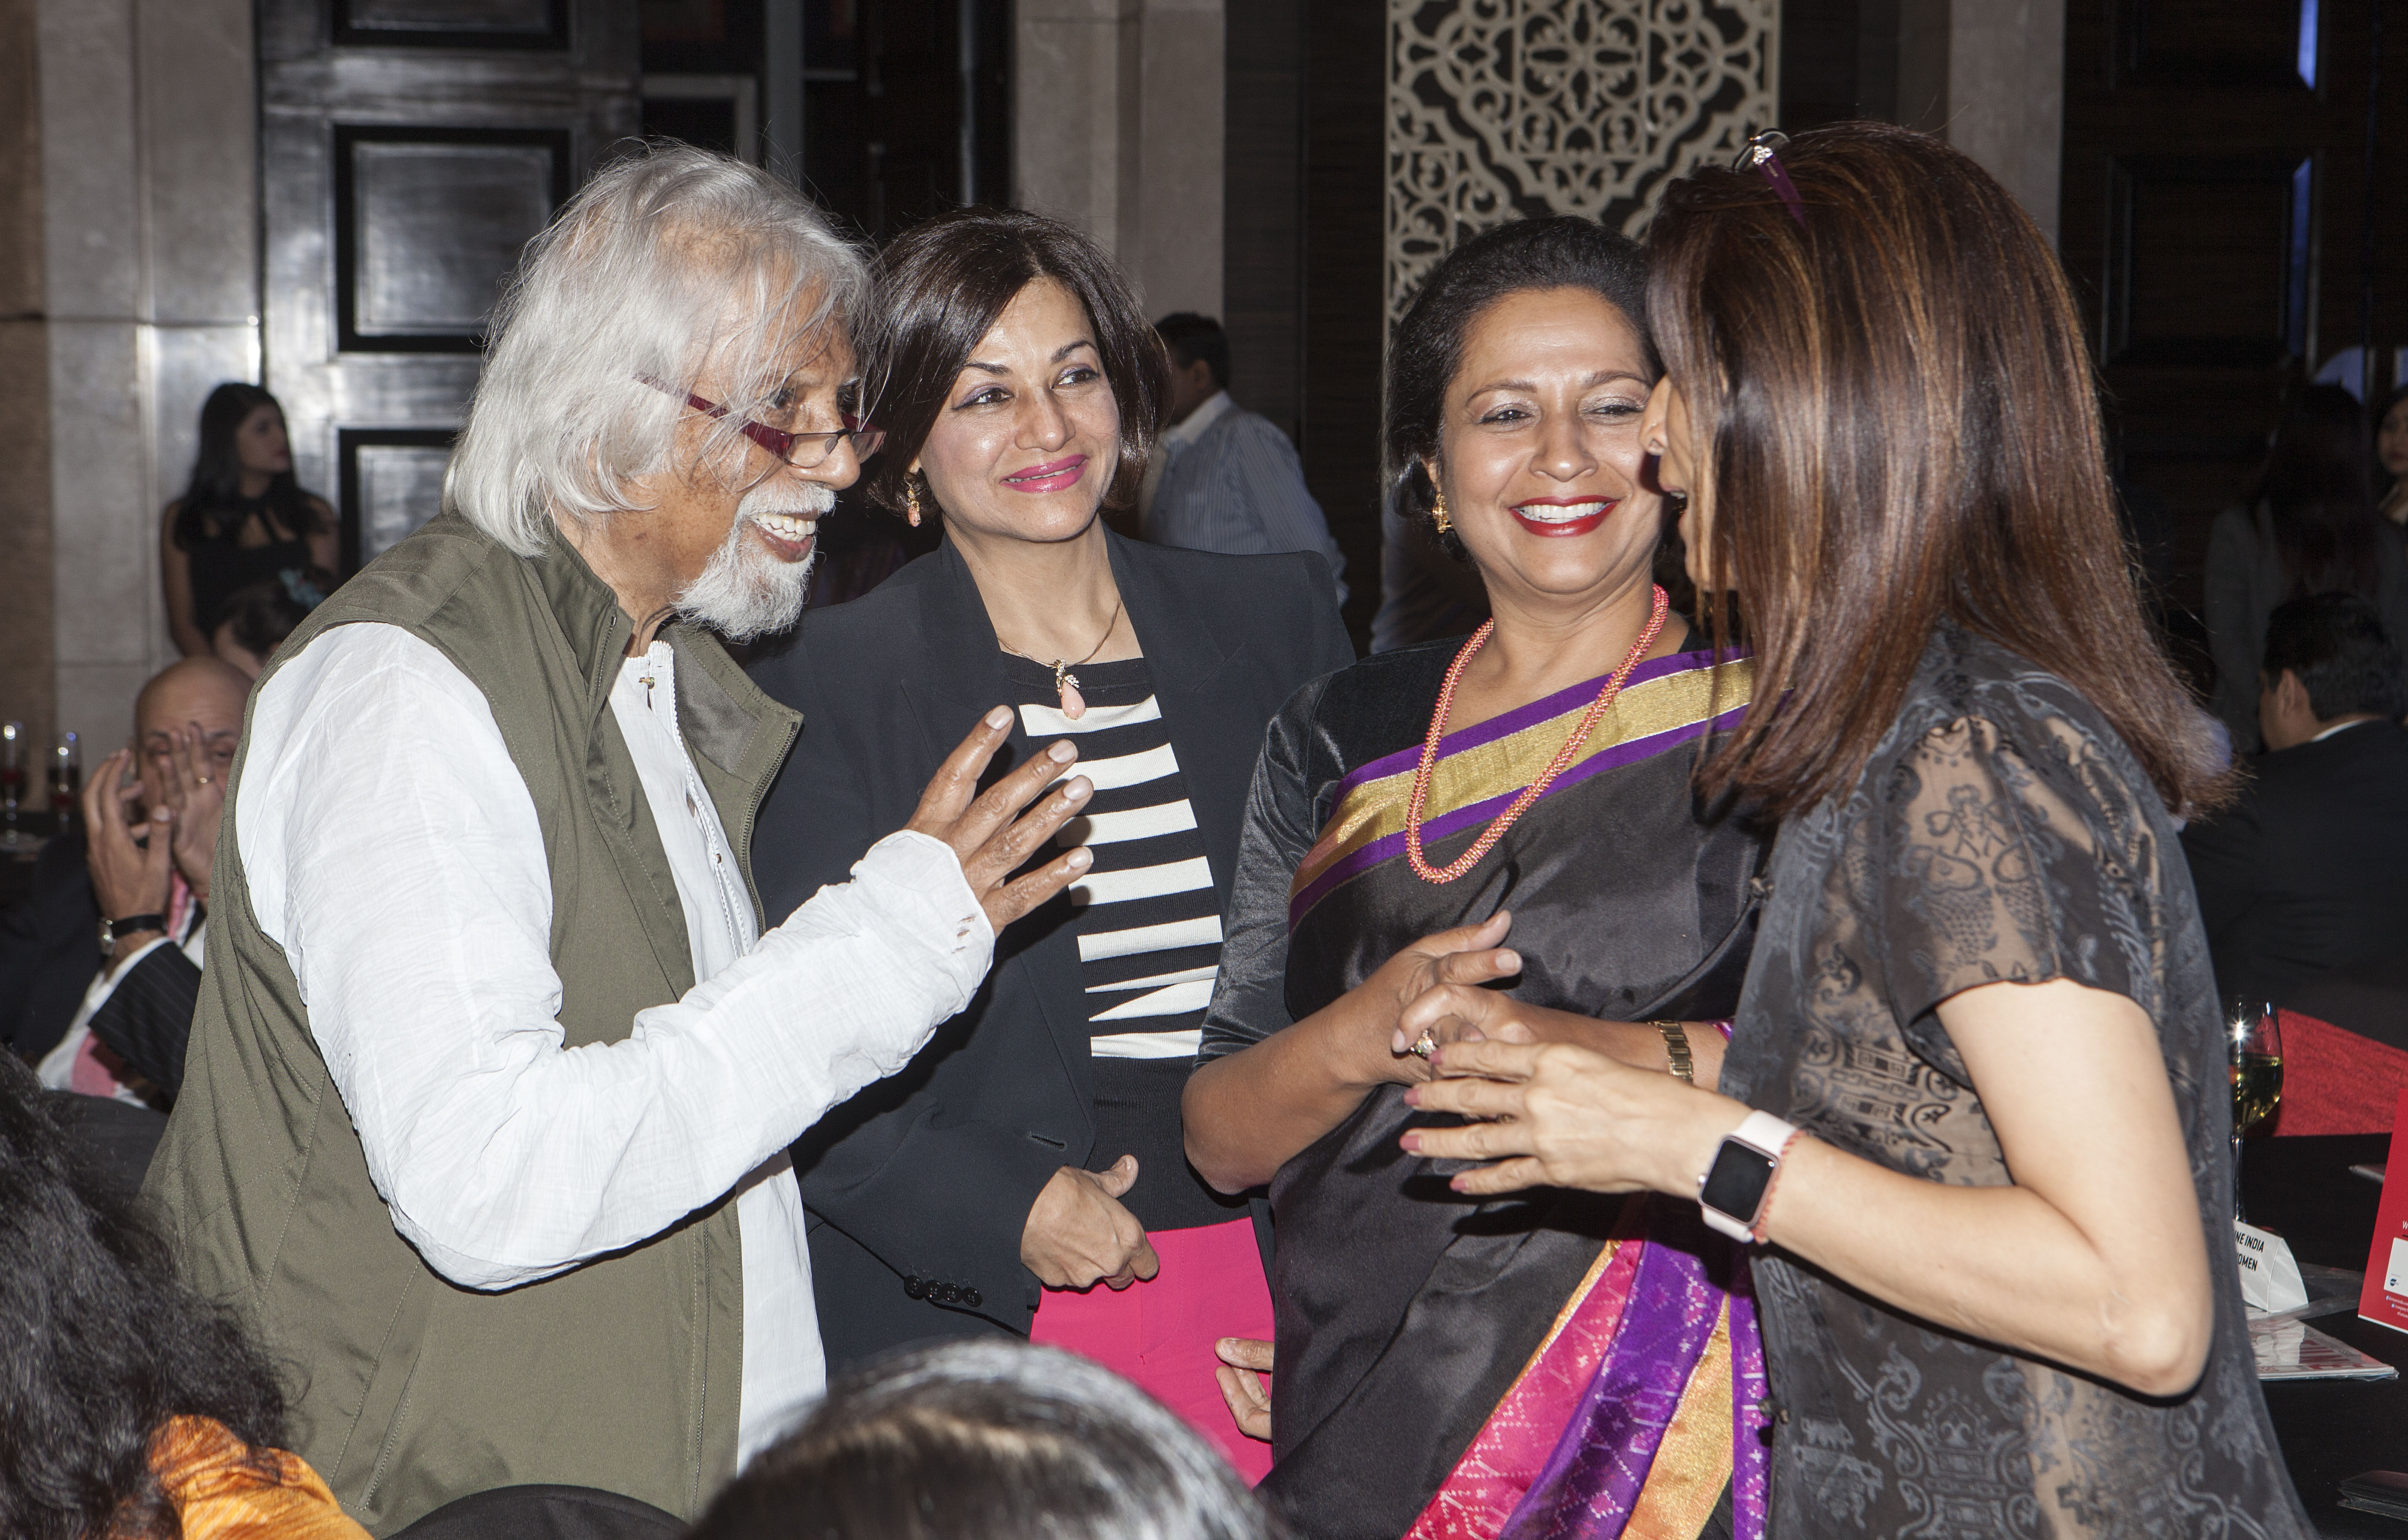 Aveek Sarkar, vice chairman and editor emeritus, ABP Group and chief editor, Fortune India with Harshbeena Zaveri, vice chairman and managing director, NRB Bearings (from left to right), Priya Paul, chairperson, Apeejay Surendra Park Hotels.